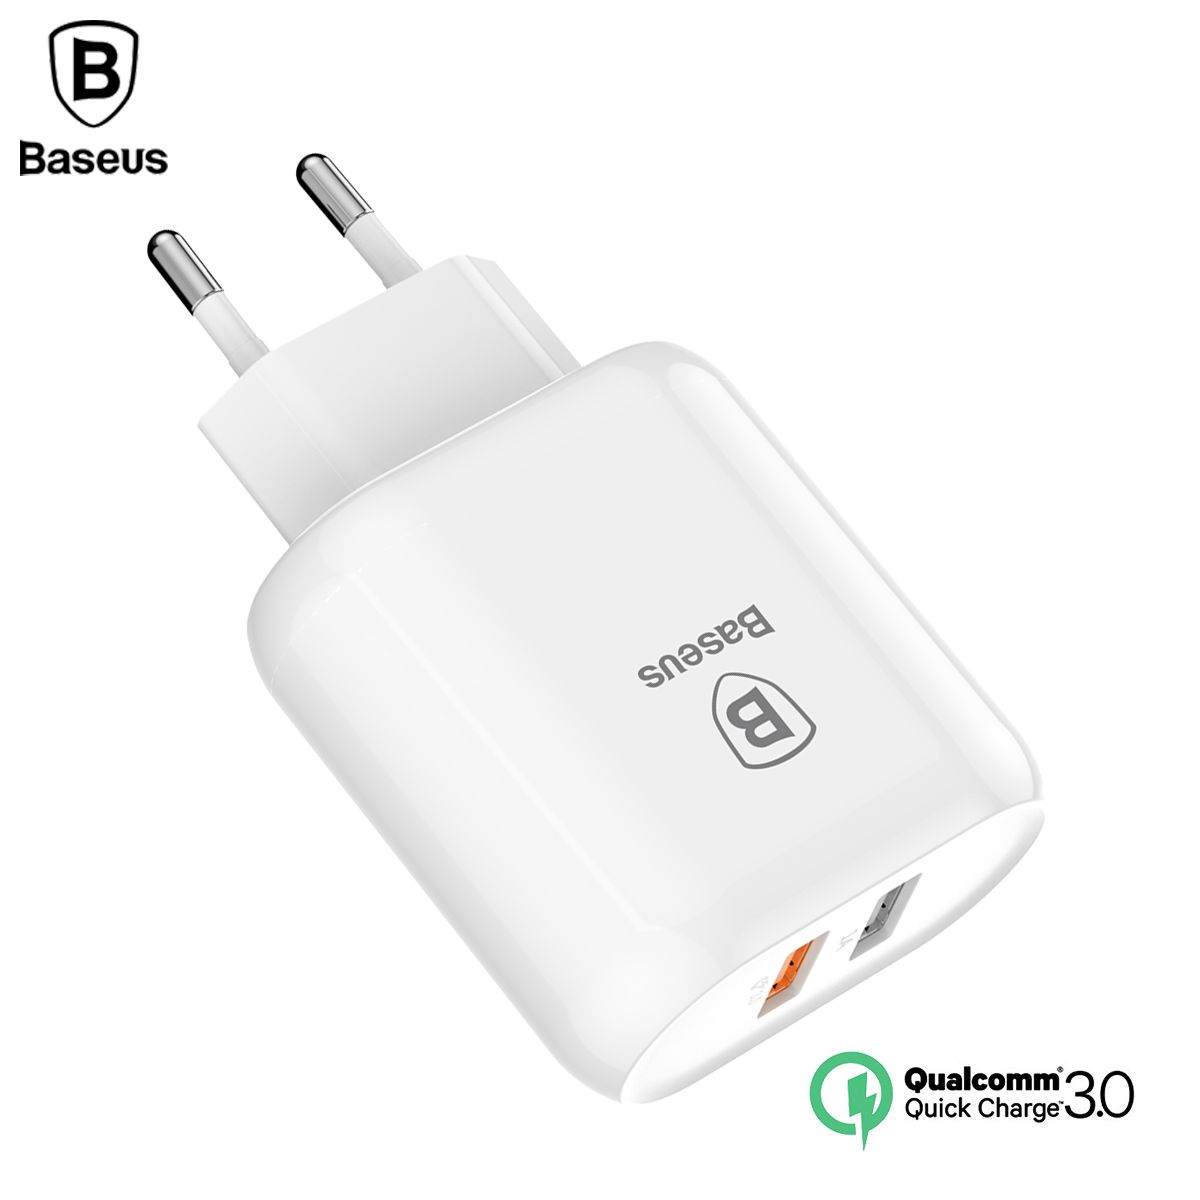 Baseus QC 3.0 Dual USB Charger <font><b>Adapter</b></font> EU Plug Travel Wall Quick Charge Charger For iPhone Samsung Xiaomi Mobile Phone Charger